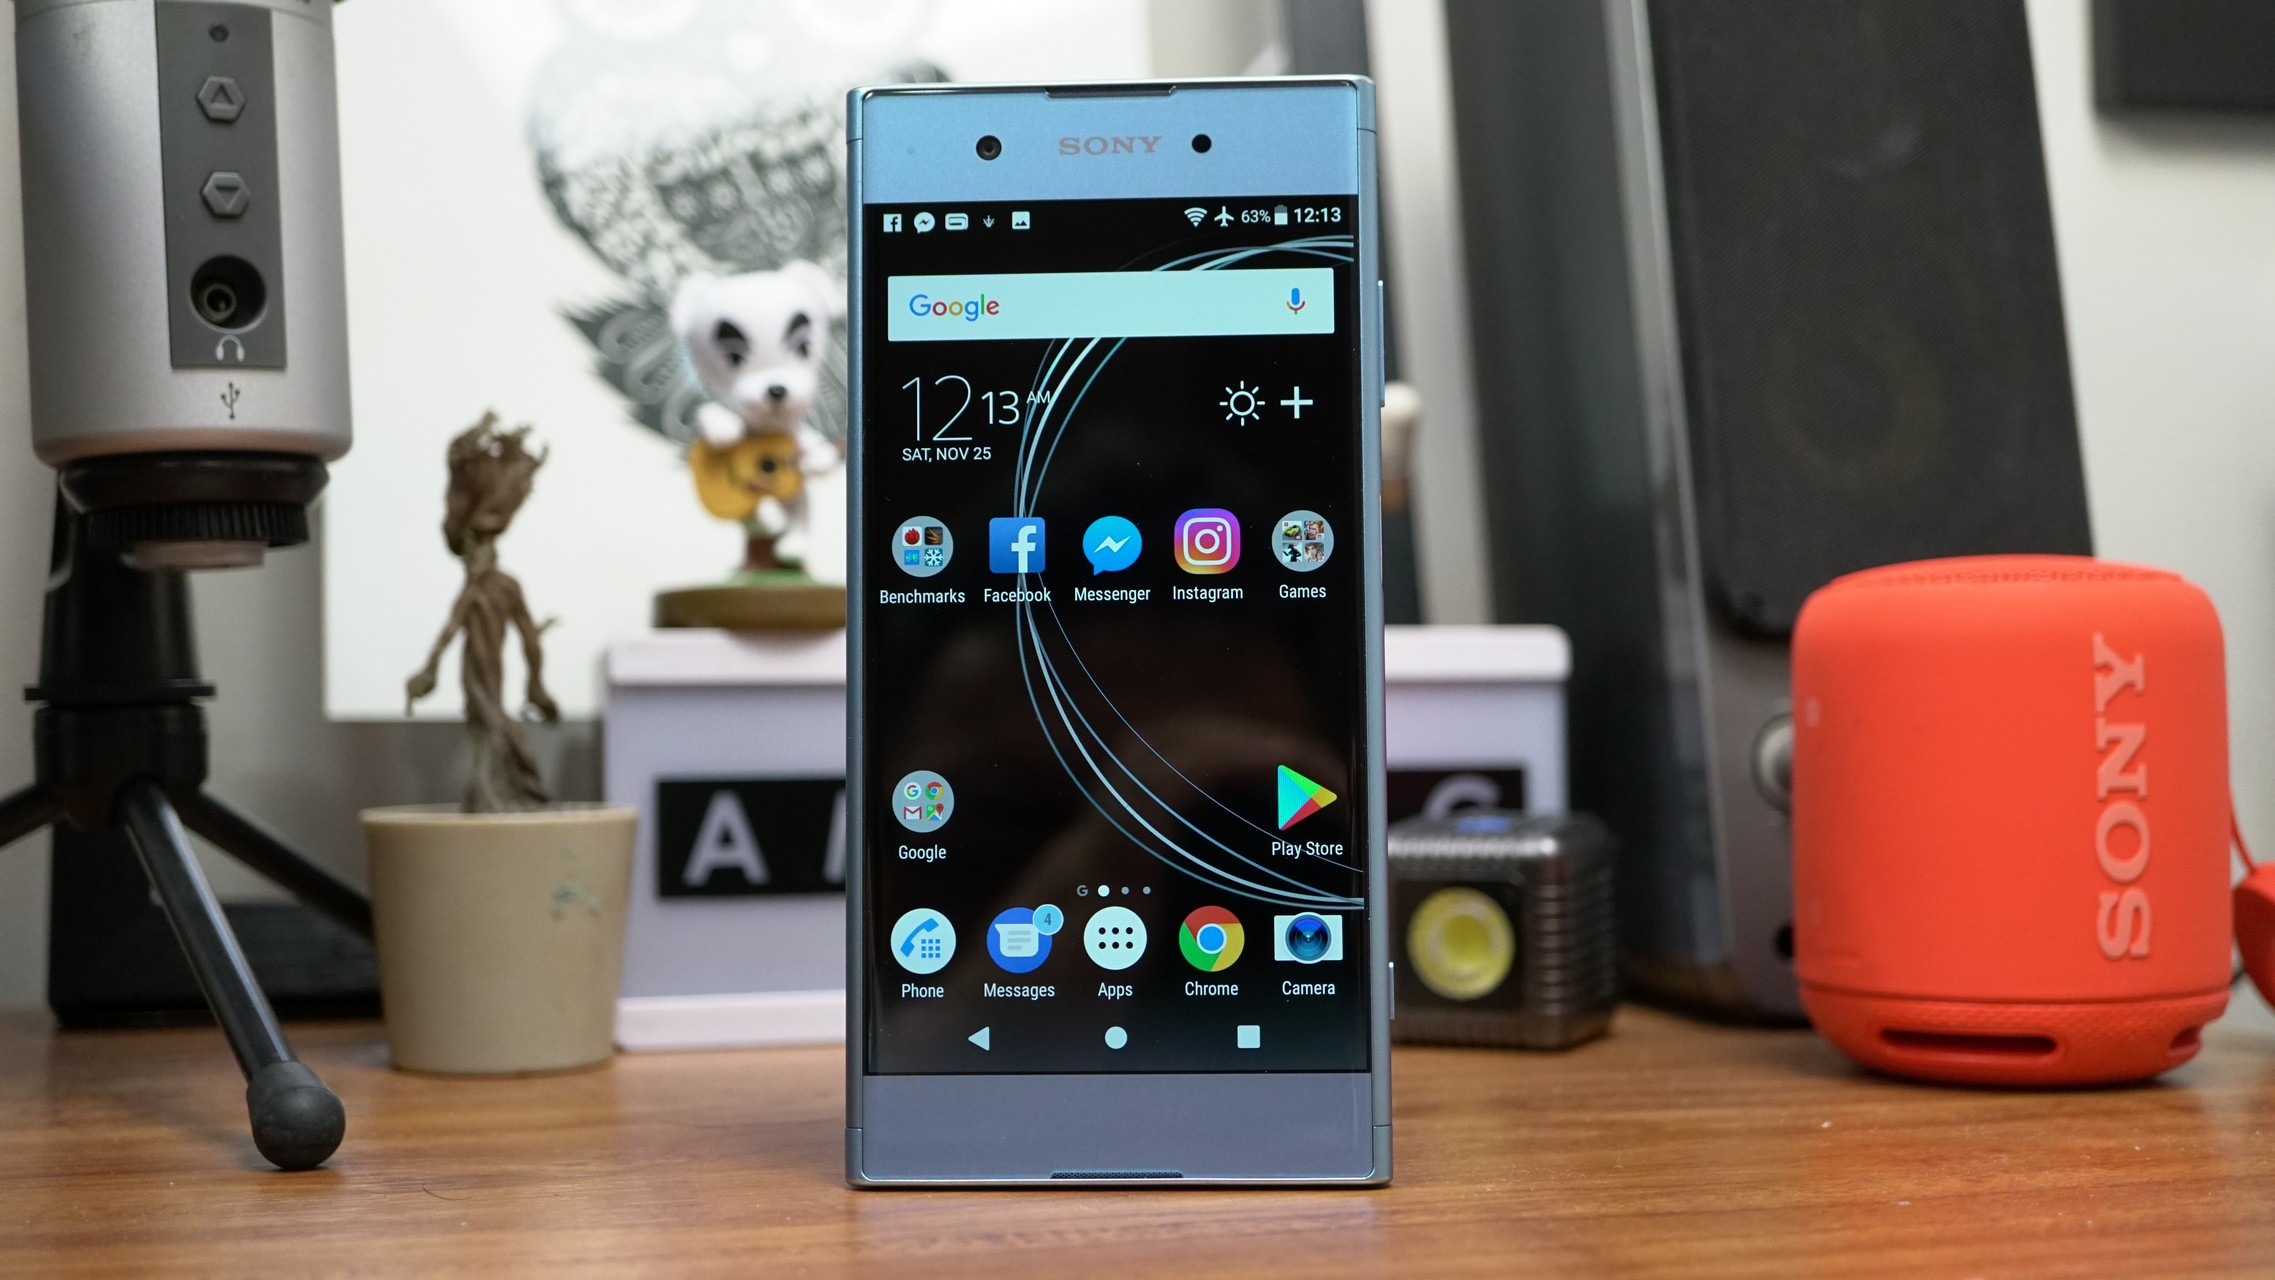 SONY Xperia XA1 Plus price in Nepal